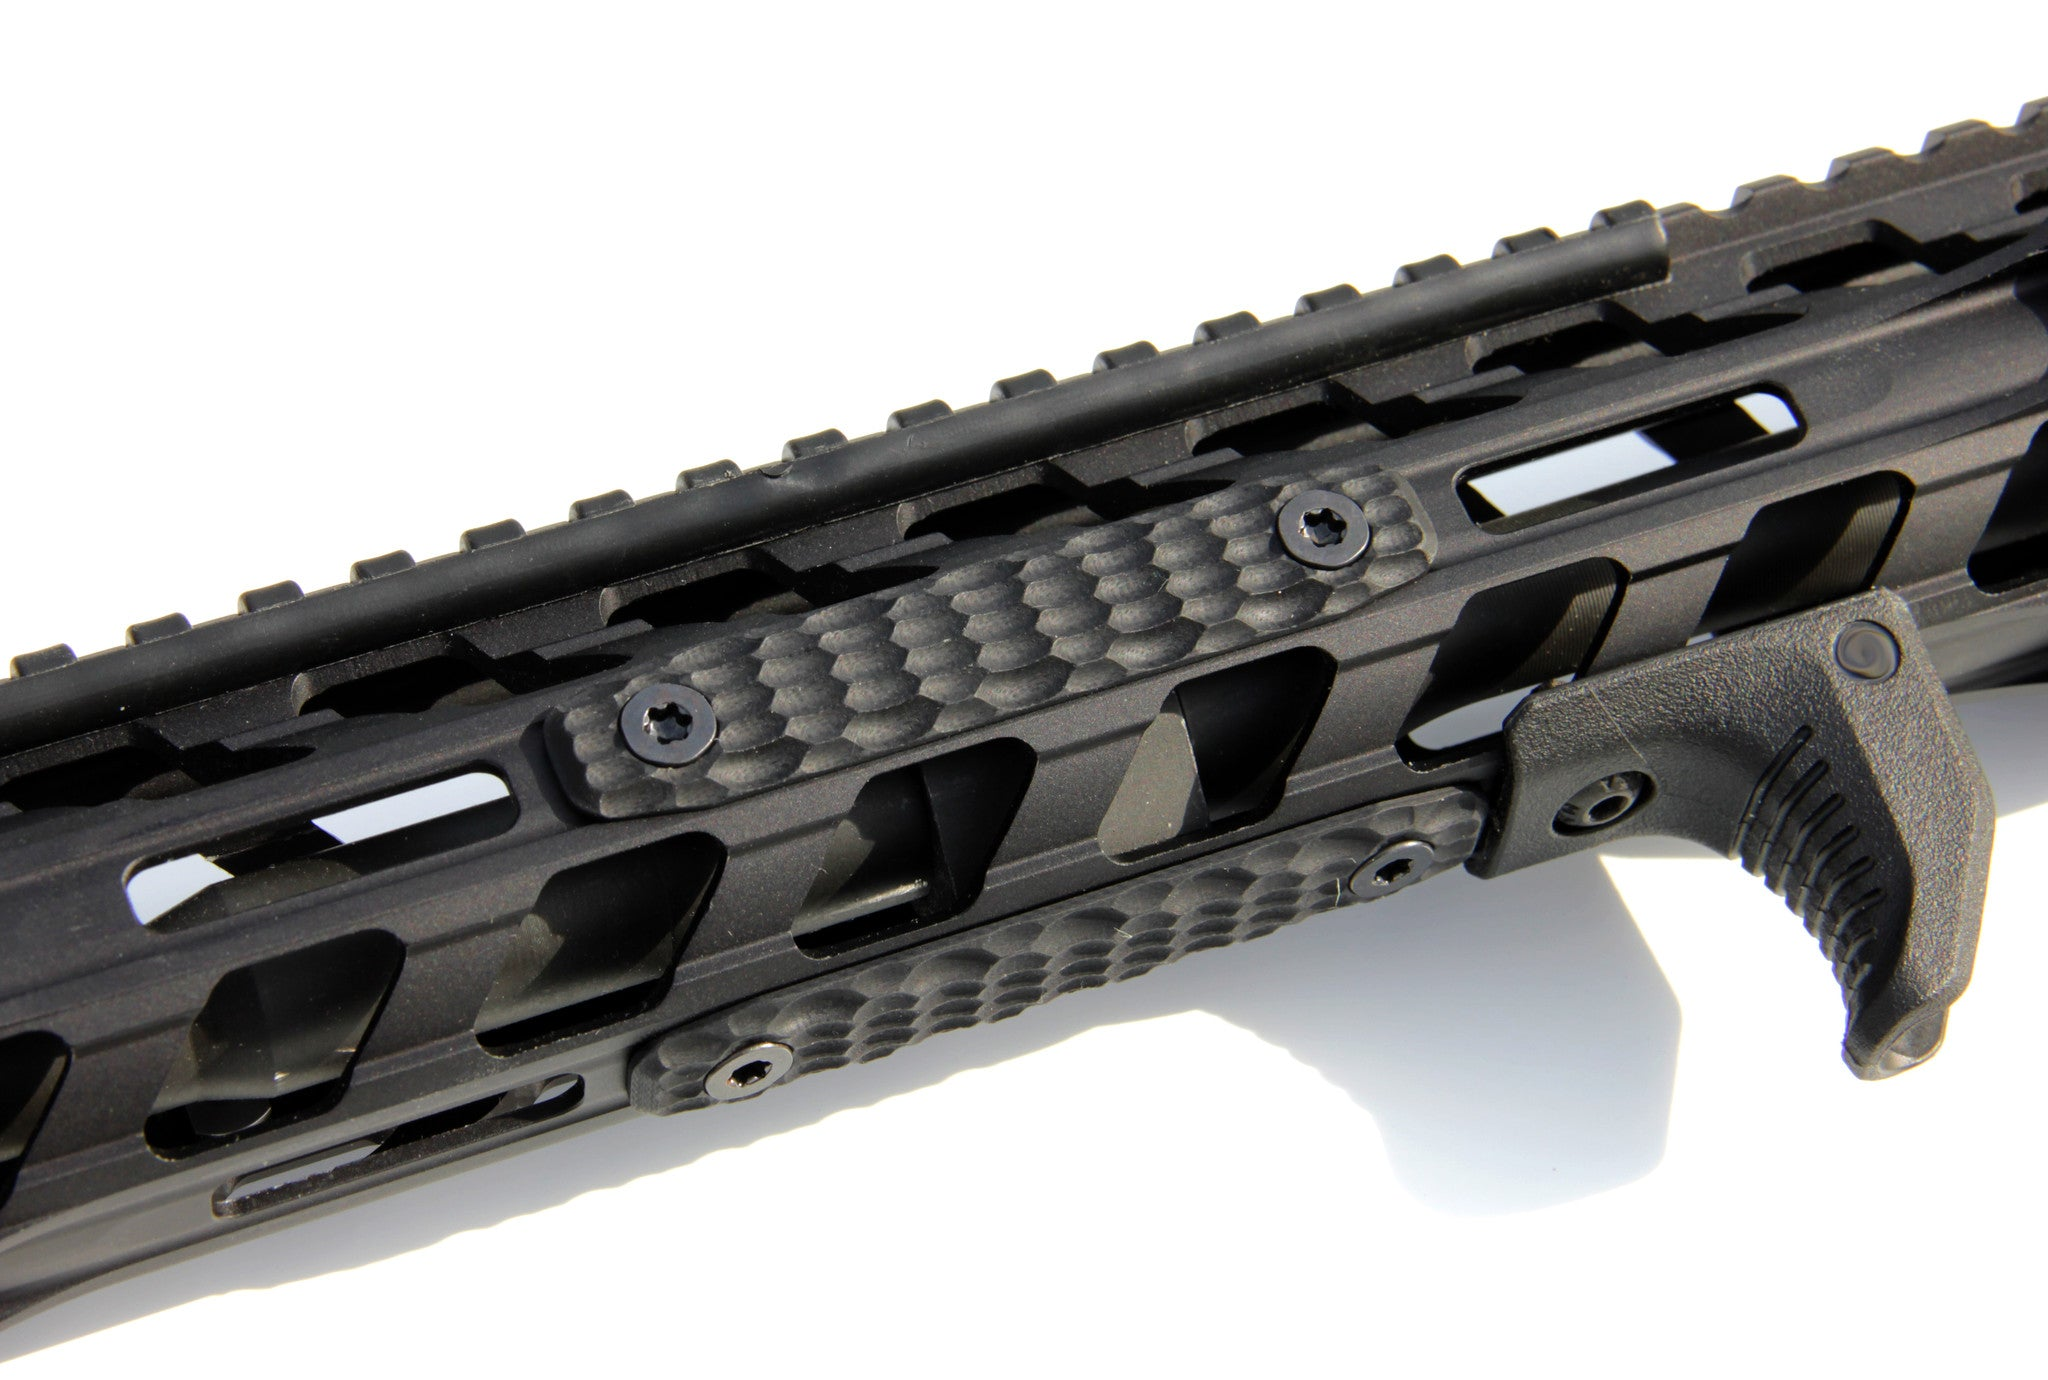 Mechforce G10 Scale Hand Grip Panel for MLok Rail Handguard Cover, 2 S